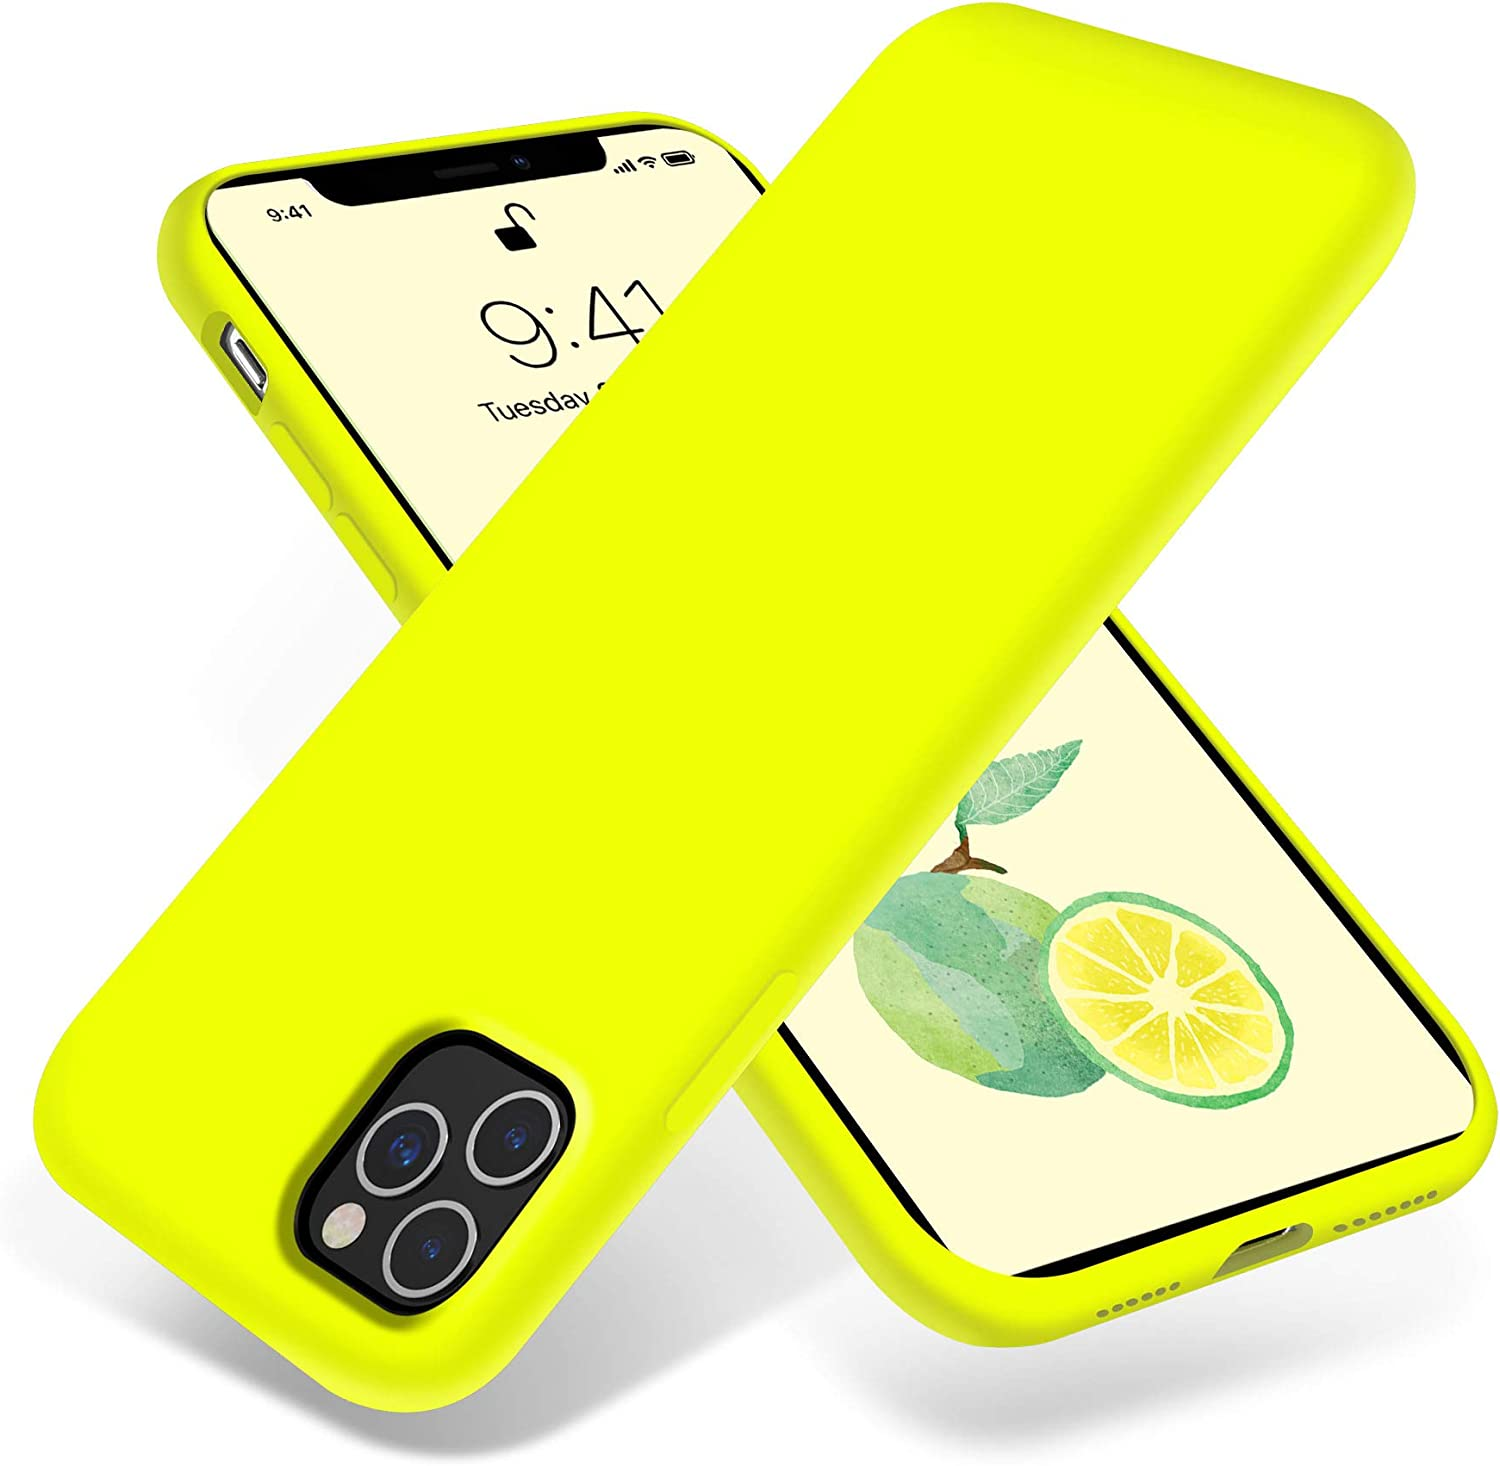 OTOFLY iPhone 11 Pro Max Case,Ultra Slim Fit iPhone Case Liquid Silicone Gel Cover with Full Body Protection Anti-Scratch Shockproof Case Compatible with iPhone 11 Pro Max (Fluorescent Yellow)